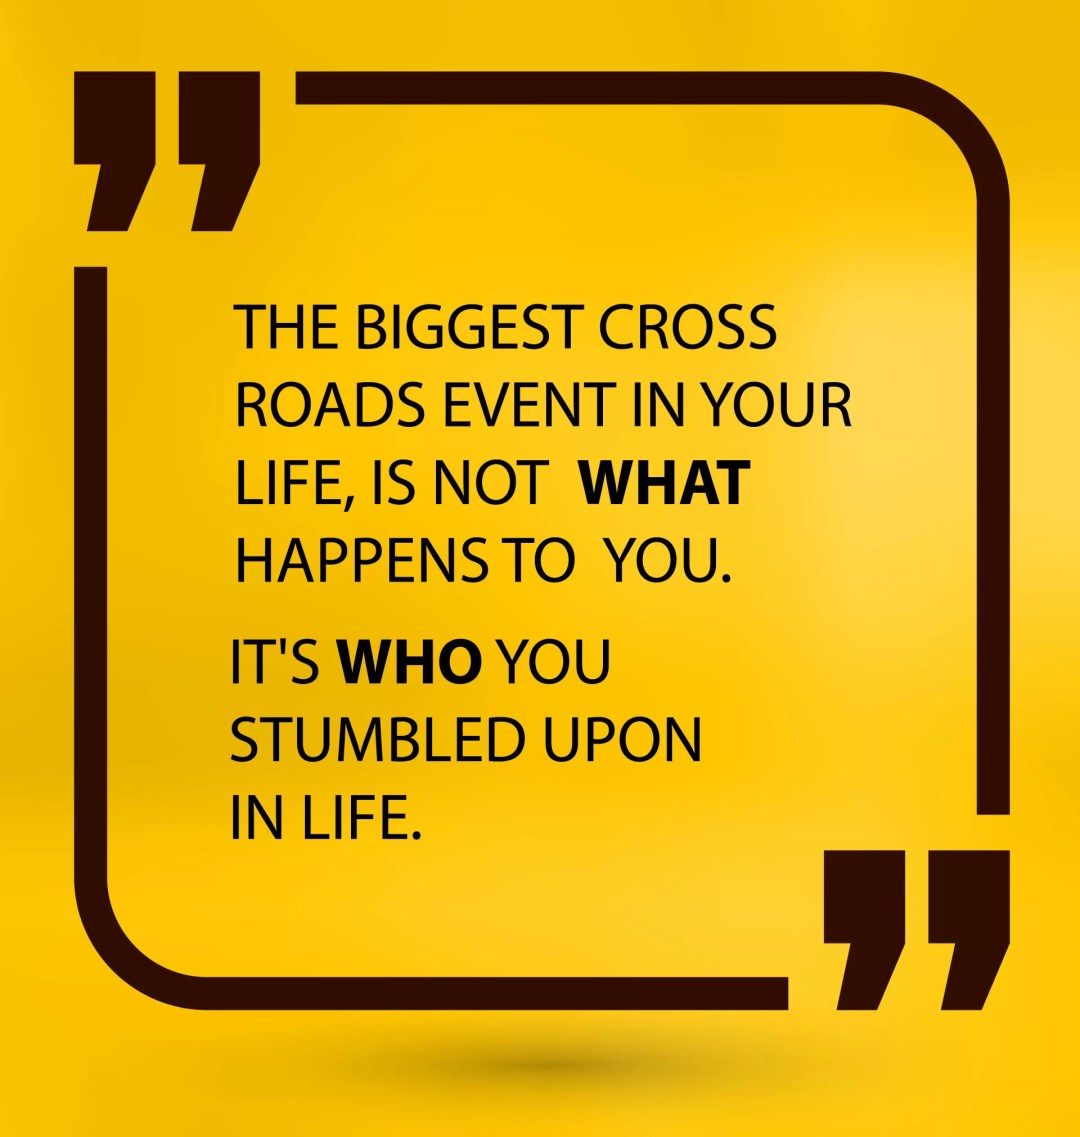 The Biggest Cross Roads Event in Your Life, Is Not What Happens to You. It's Who You Stumbled Upon in Life.